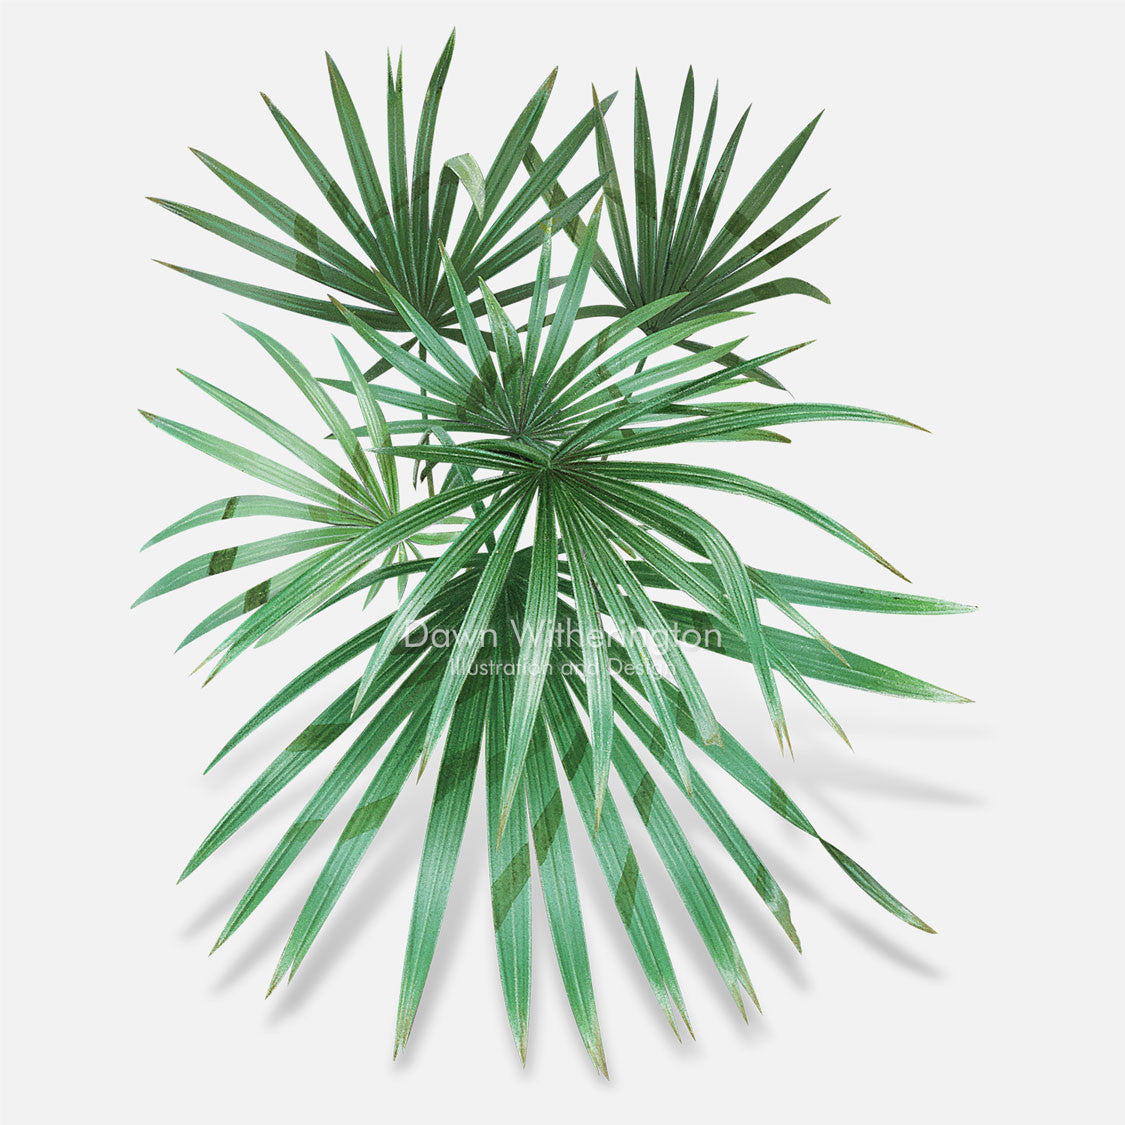 This beautiful illustration of saw palmetto, Serenoa repens, is botanically accurate in detail.